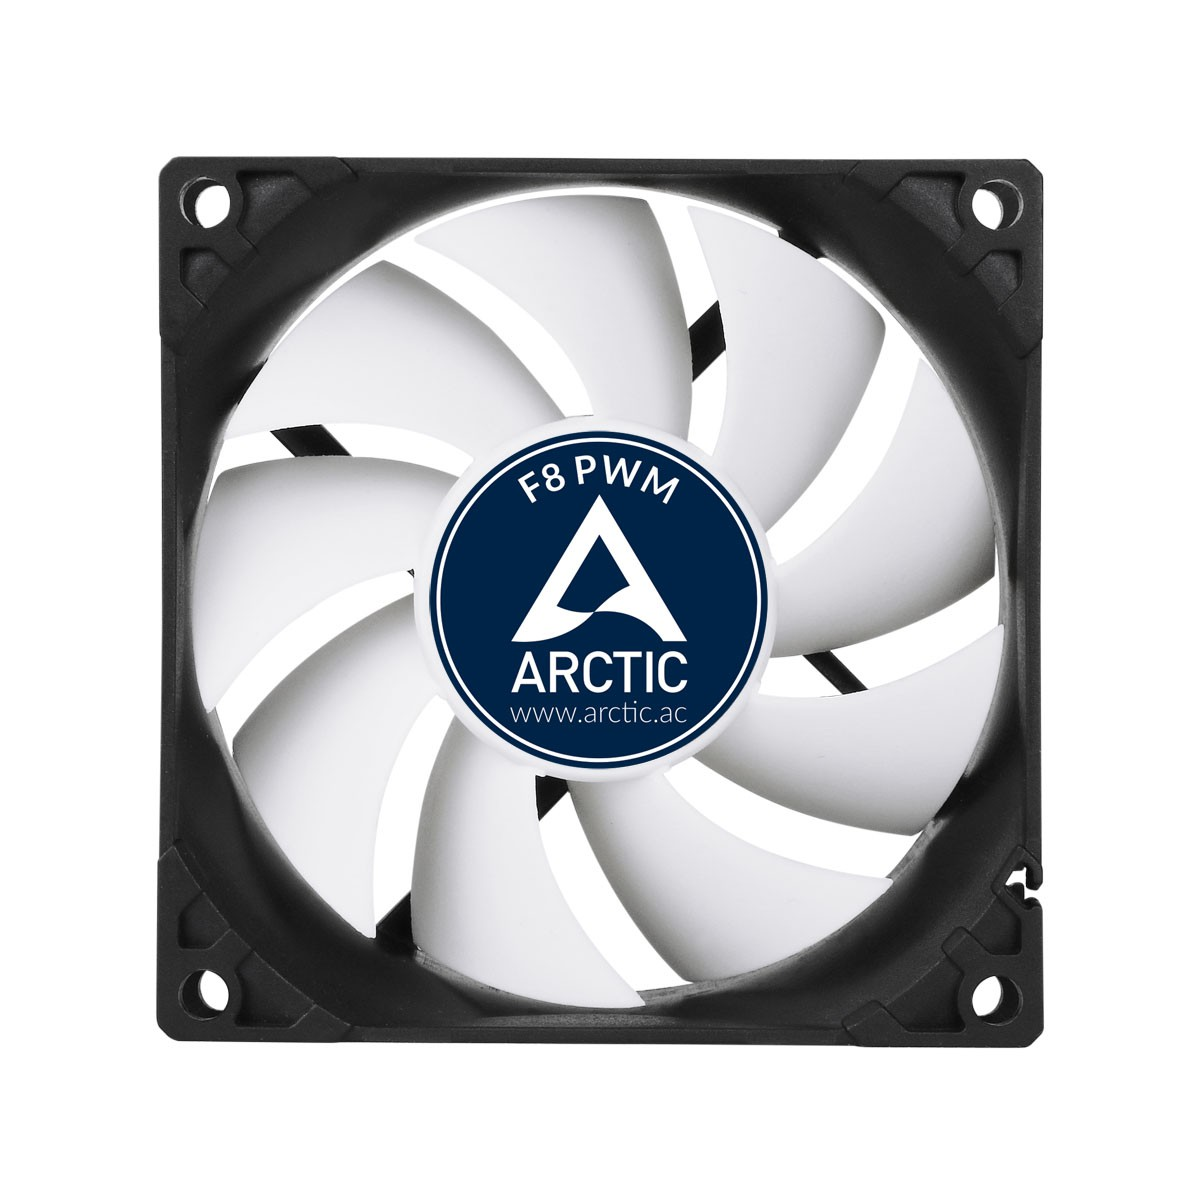 Вентилятор Arctic Cooling F8 PWM (AFACO-080P2-GBA01) (80mm, 300-2000rpm, 31CFM, 22.5dBa, 4-pin)